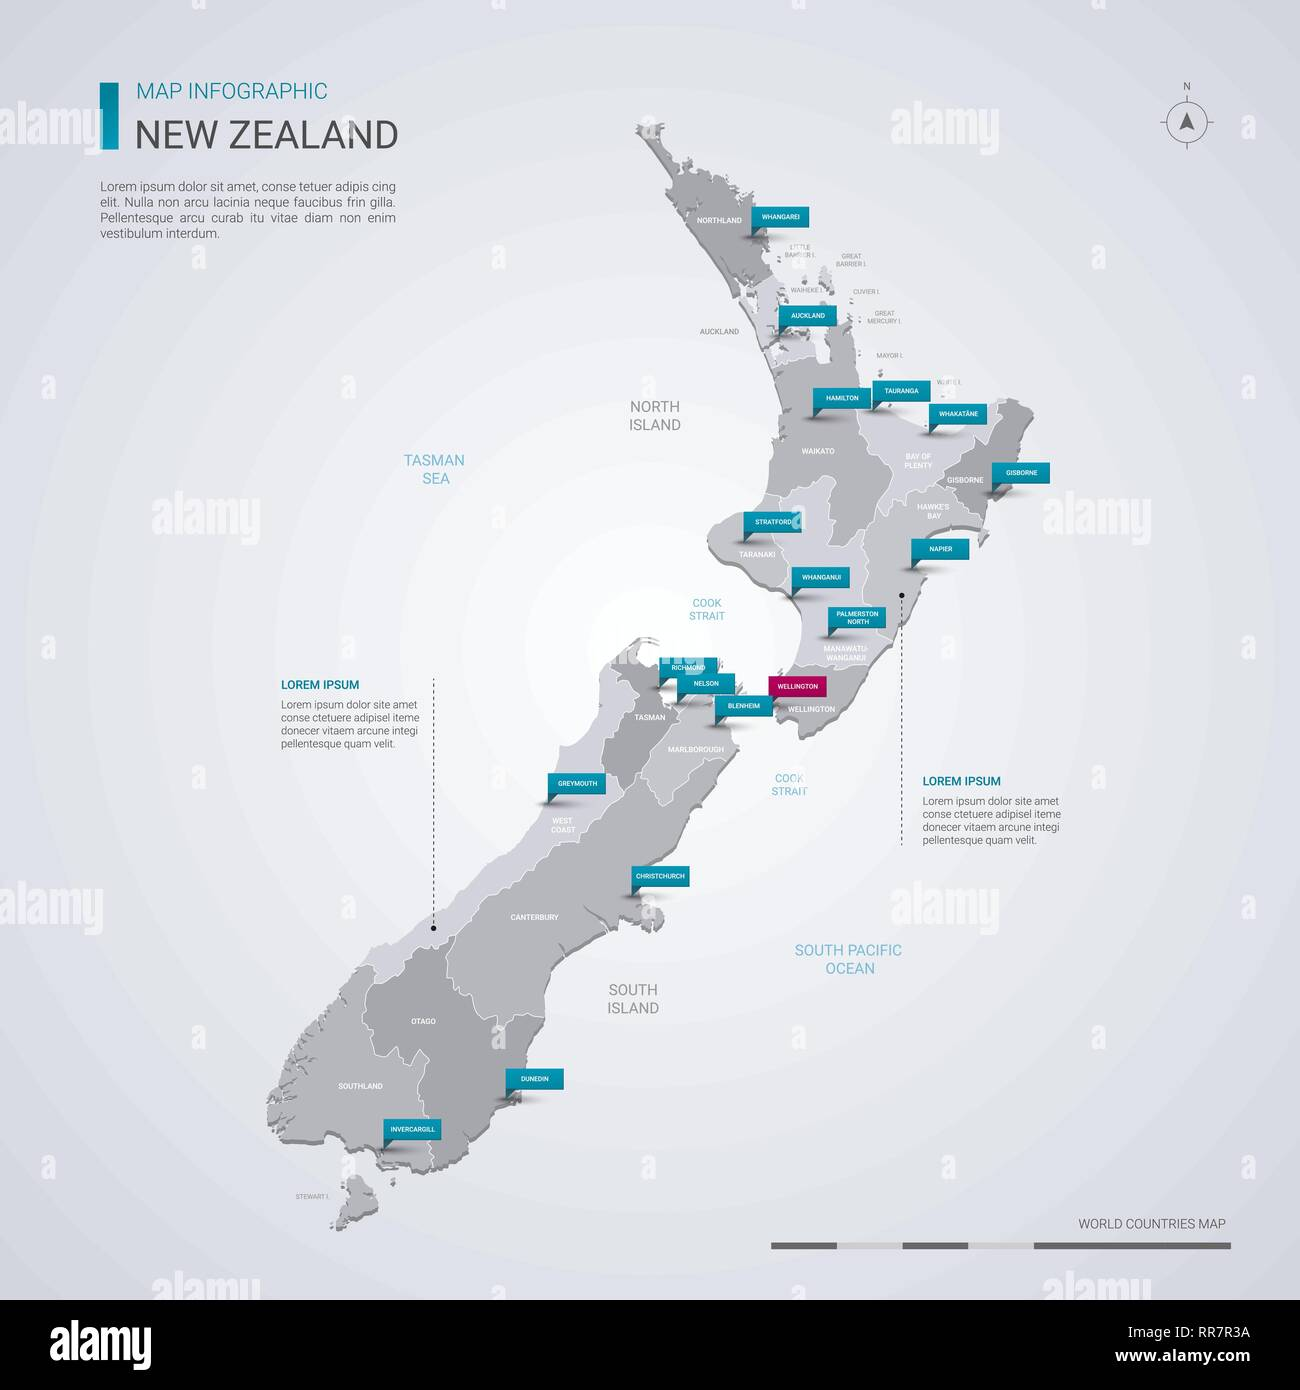 Cities In New Zealand Map.New Zealand Vector Map With Infographic Elements Pointer Marks